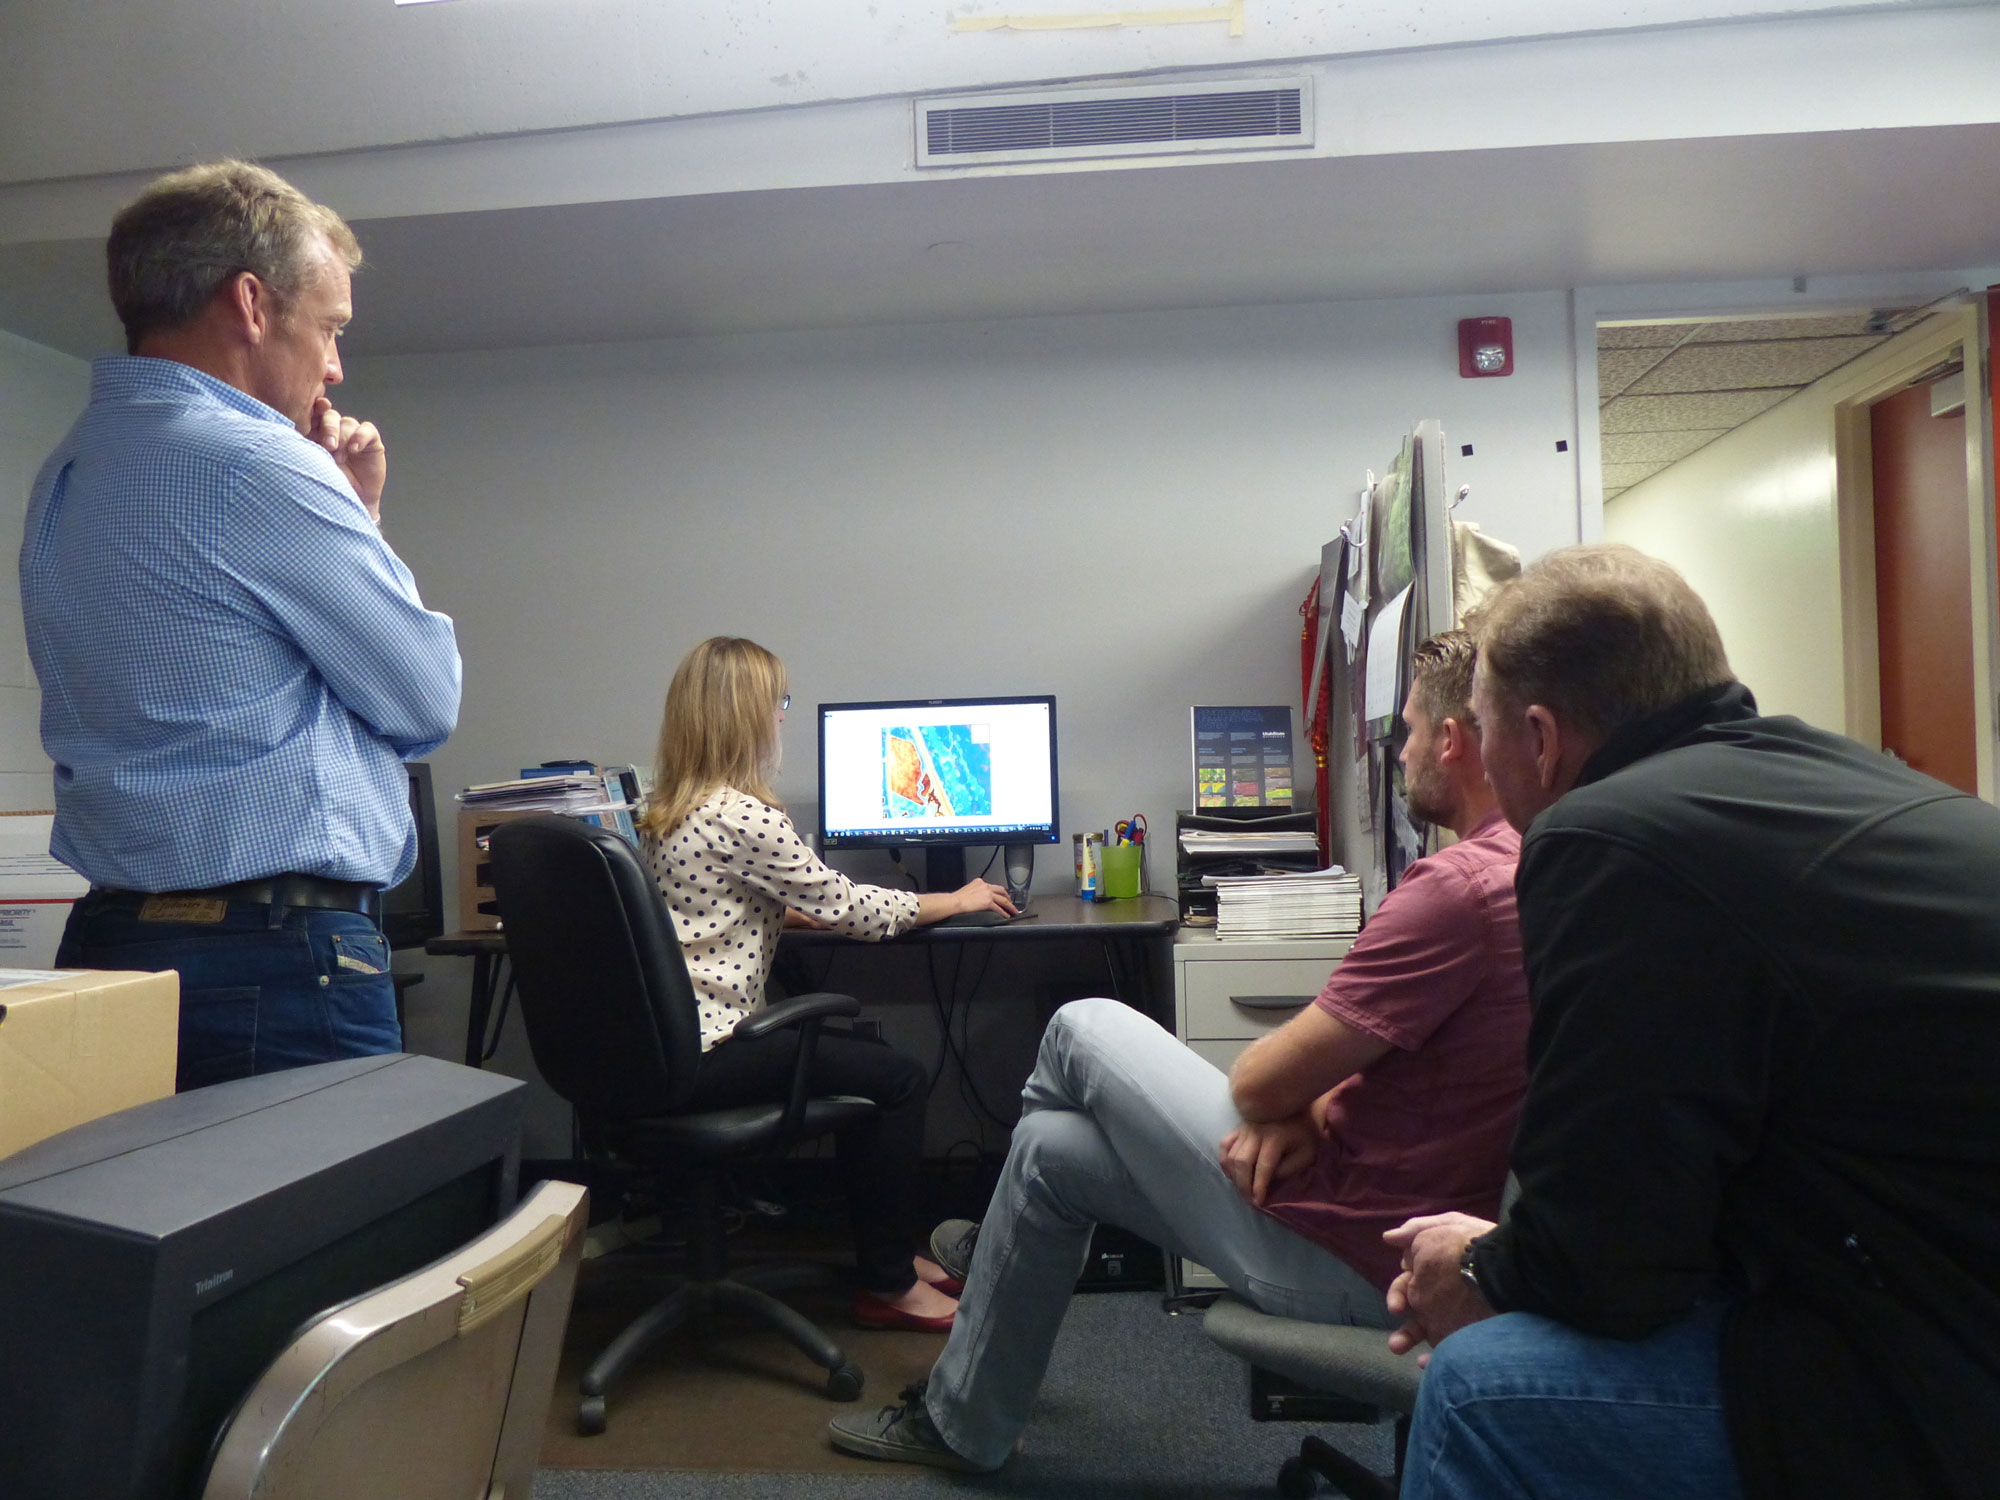 People in room looking at computer with processed information